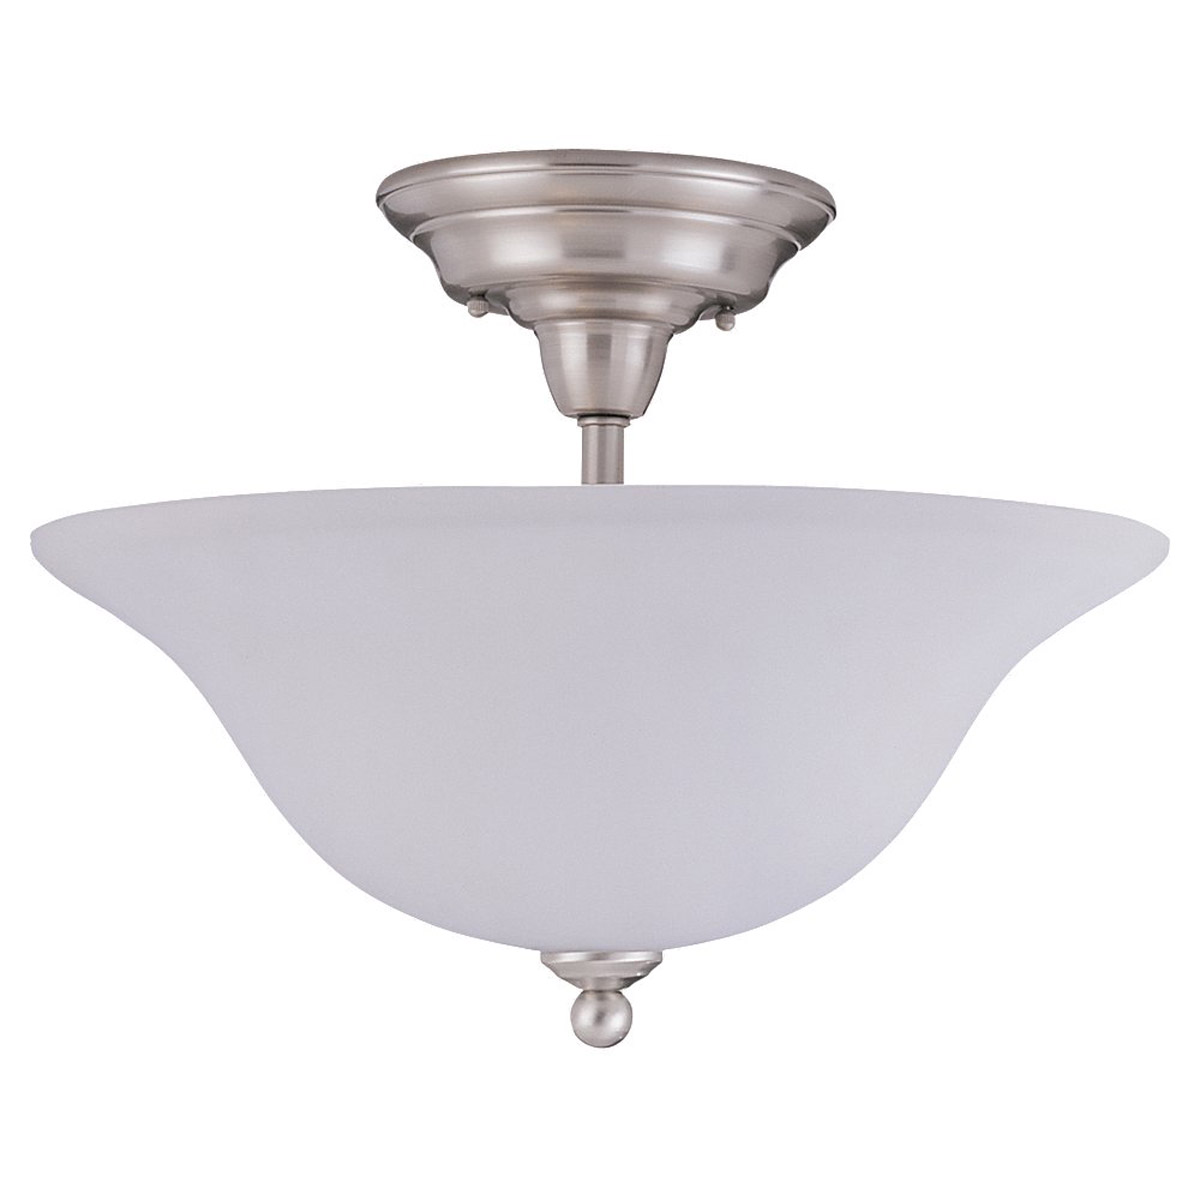 Sea Gull Lighting Sussex 3 Light Semi-Flush Mount in Brushed Nickel 79661BLE-962 photo